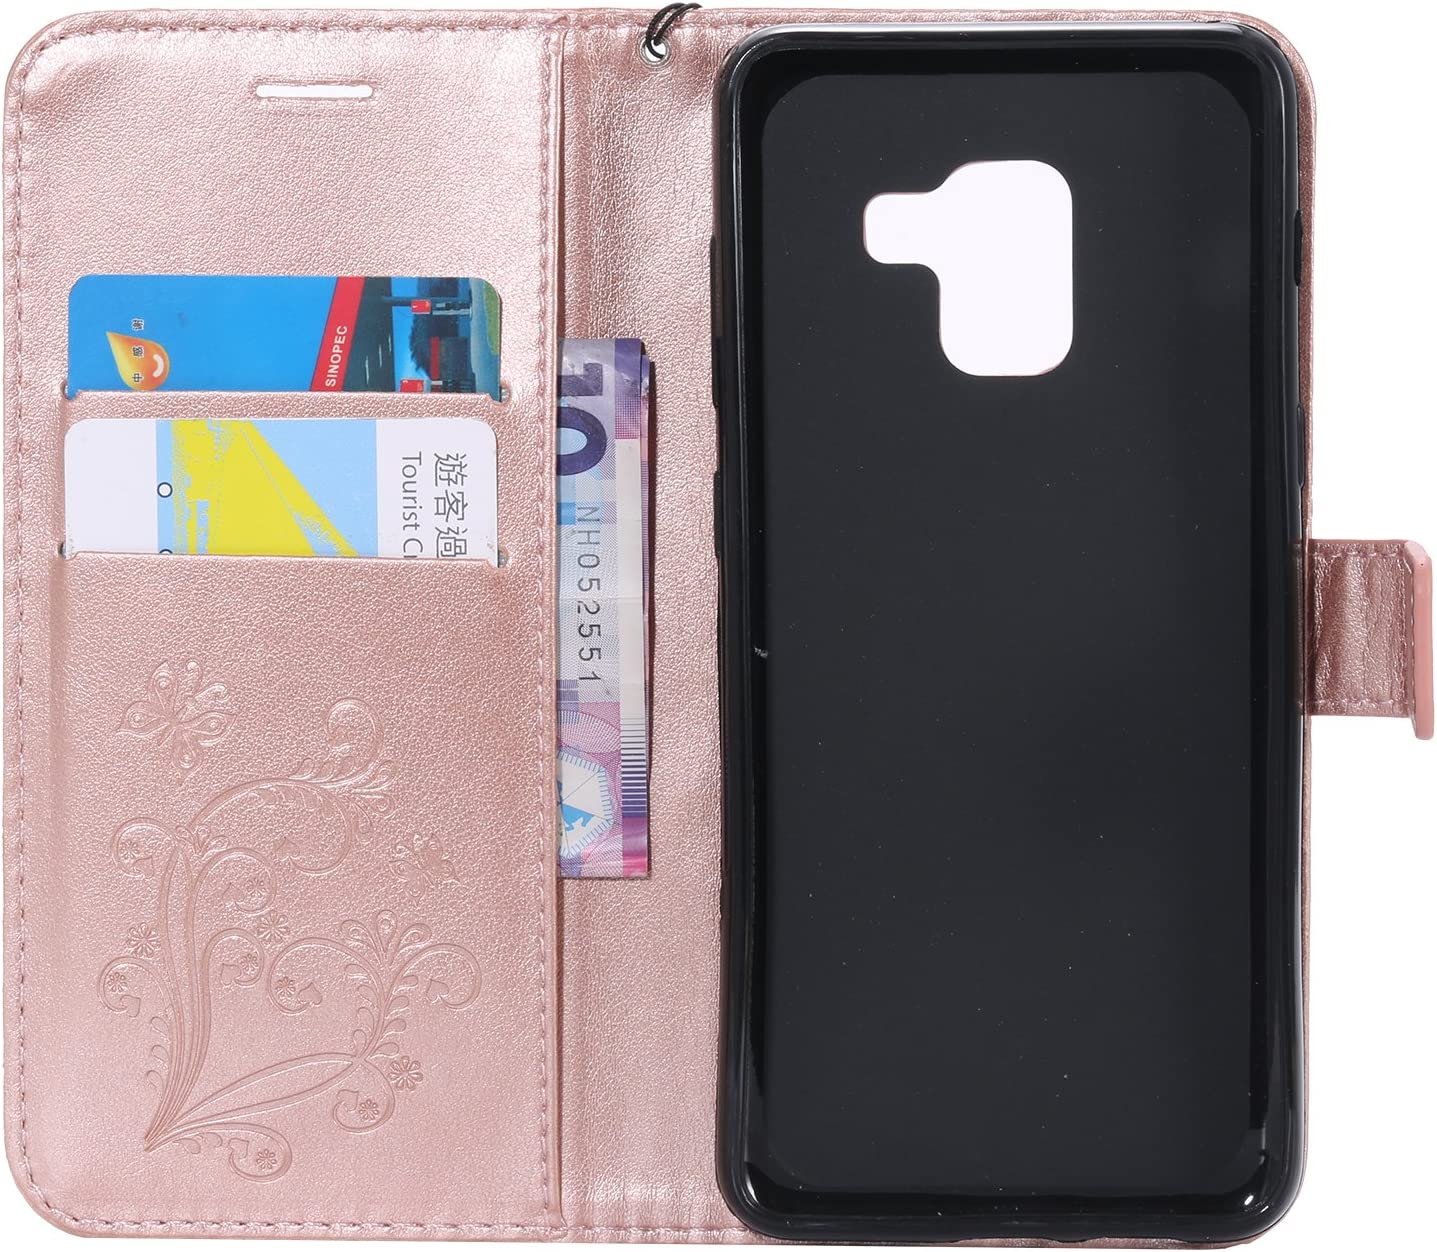 Amocase Wallet Leather Case with 2 in 1 Stylus for Samsung Galaxy A8 2018,Premium Strap 3D Butterfly Magnetic PU Leather Stand Shockproof Card Slot Case for Samsung Galaxy A8 2018 Green